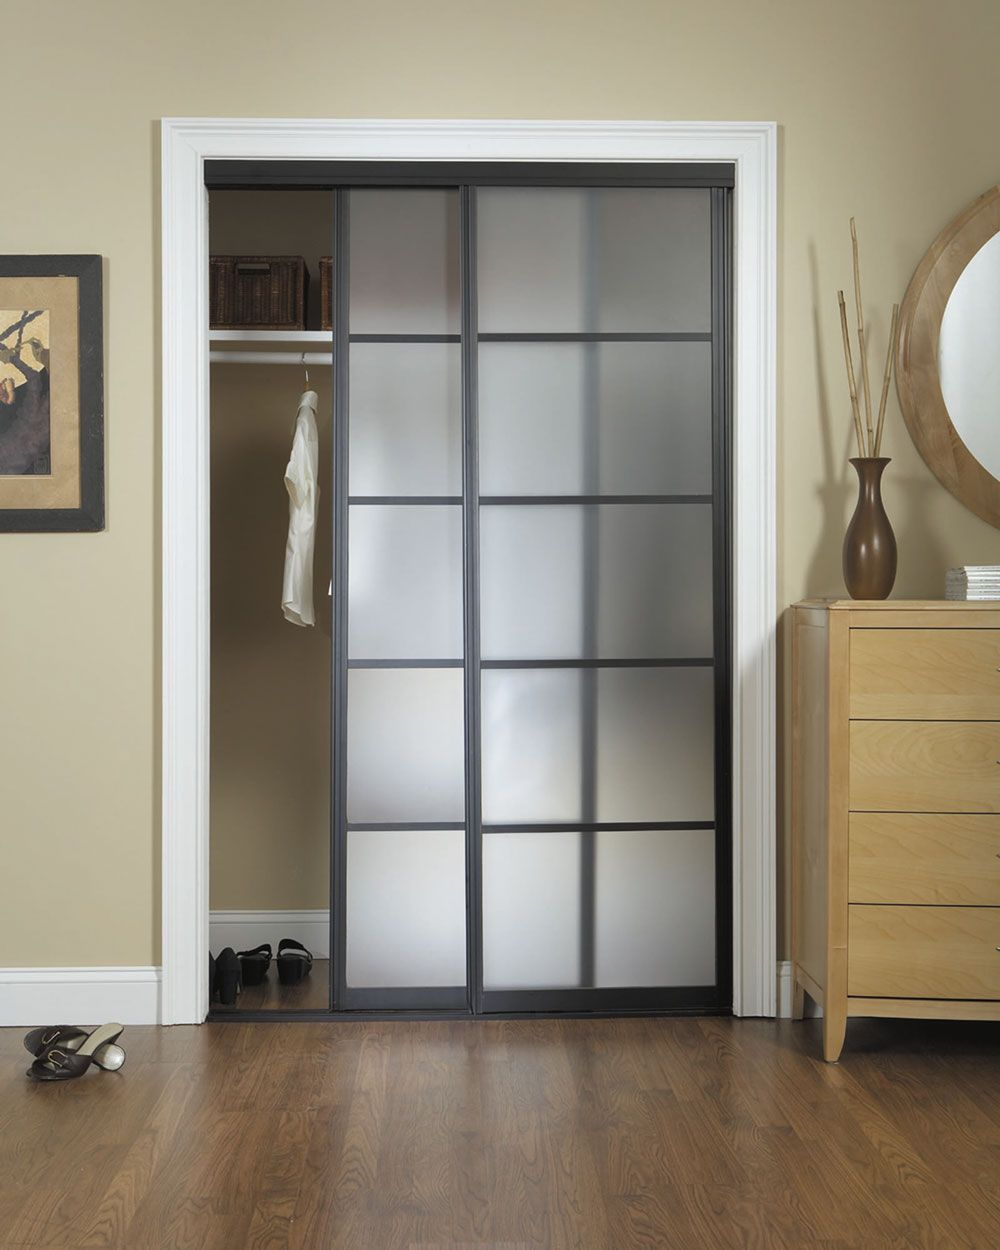 Small Lighting Mirrored Sliding Wardrobe Doors Additional Options Fabulous  Result Product Gray Fabric Carpet